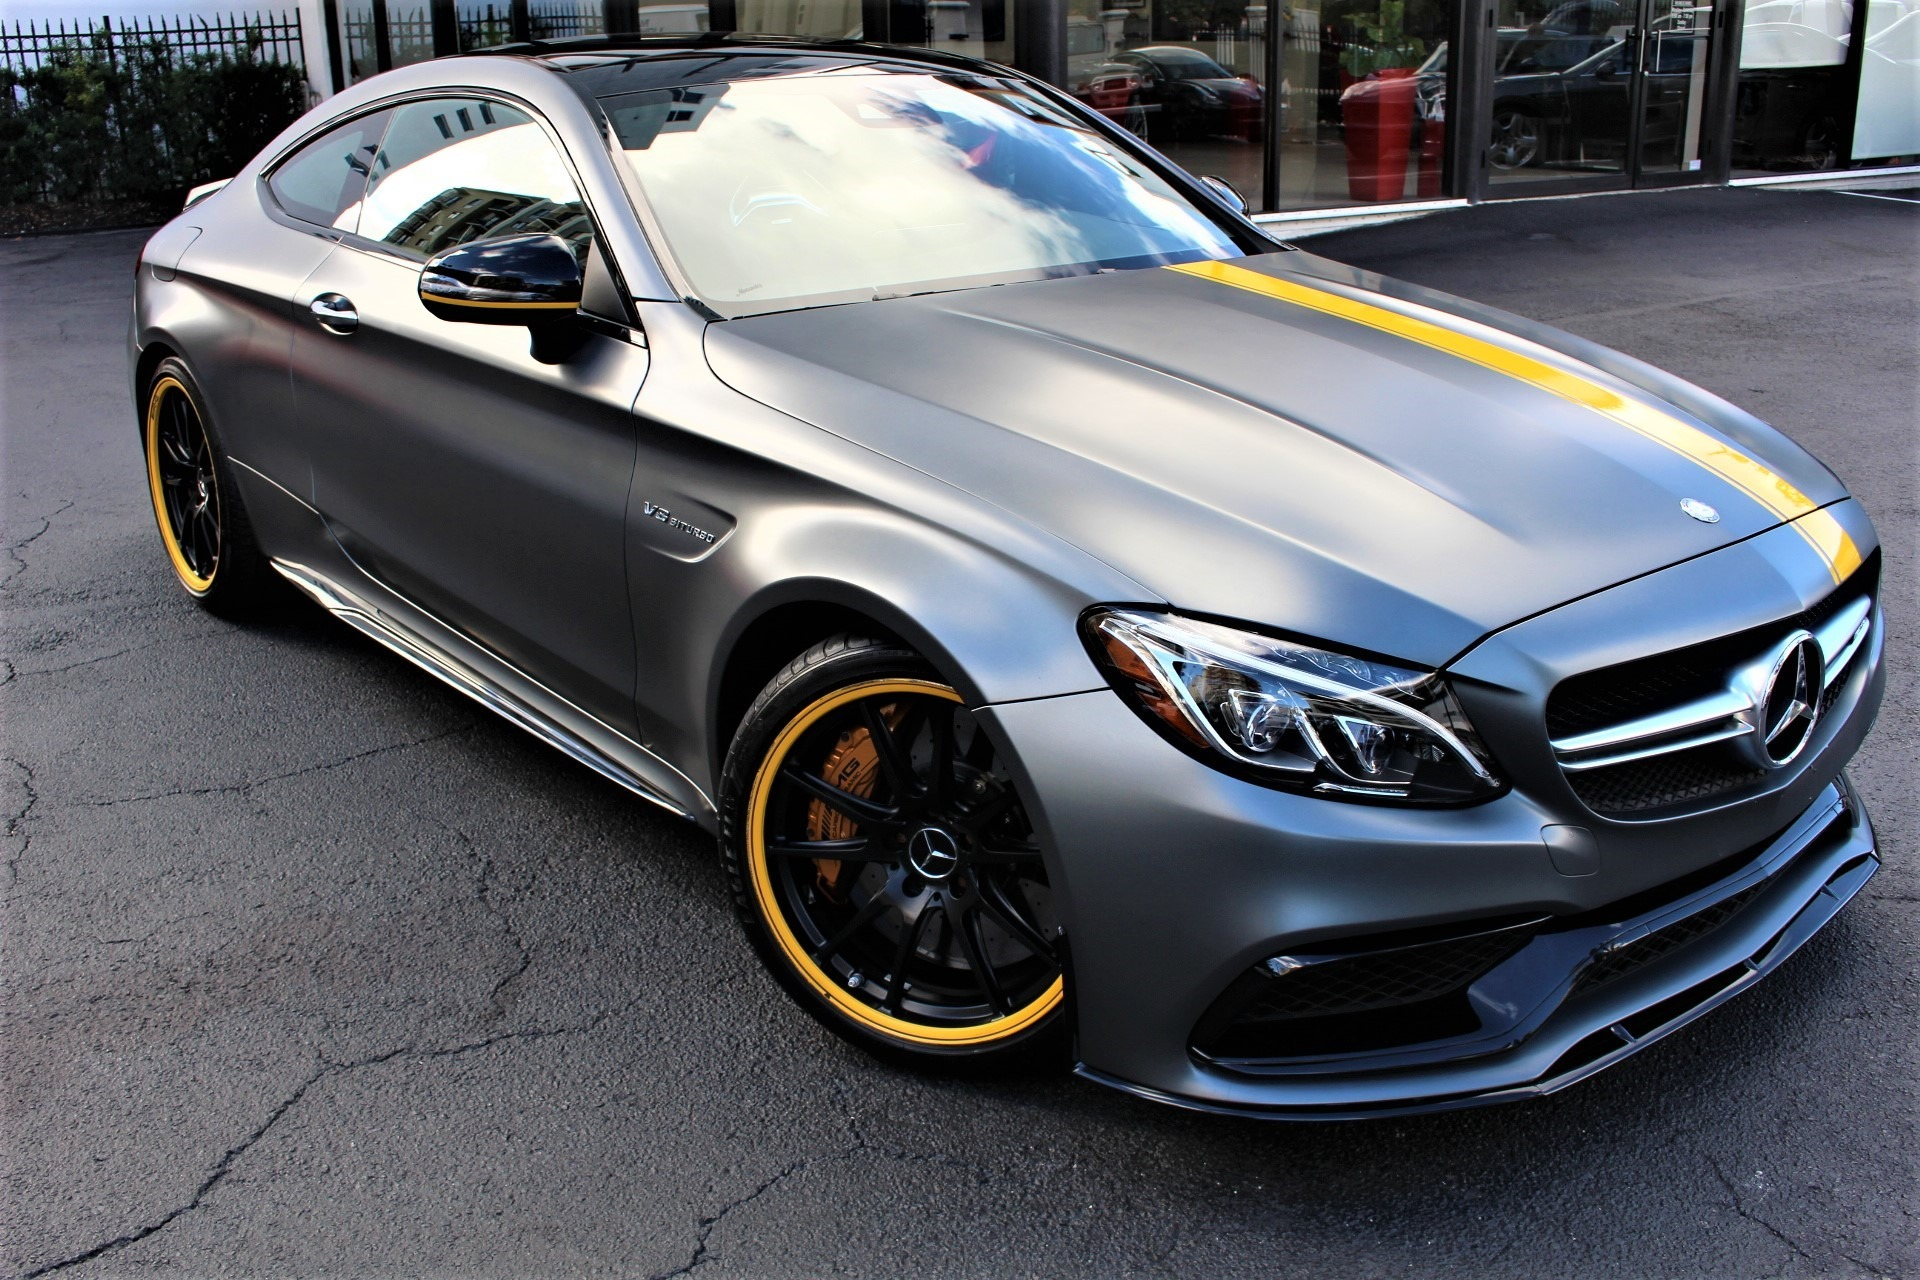 Used 2017 Mercedes-Benz C-Class AMG C 63 S Edition 1 for sale Sold at The Gables Sports Cars in Miami FL 33146 1